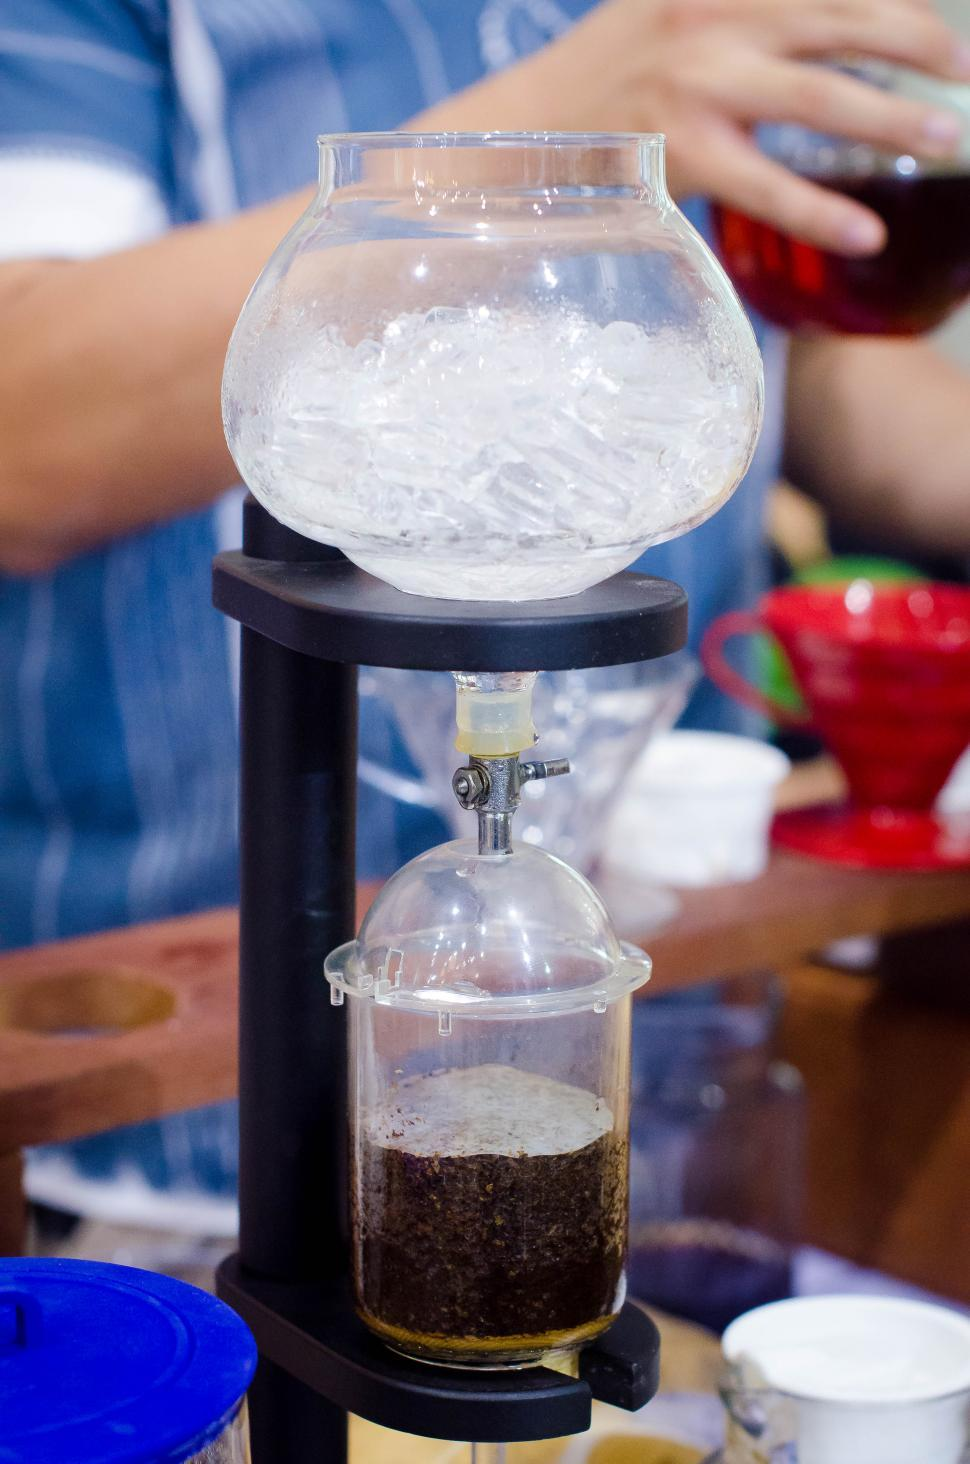 Download Free Stock HD Photo of Ice in Coffee maker  Online